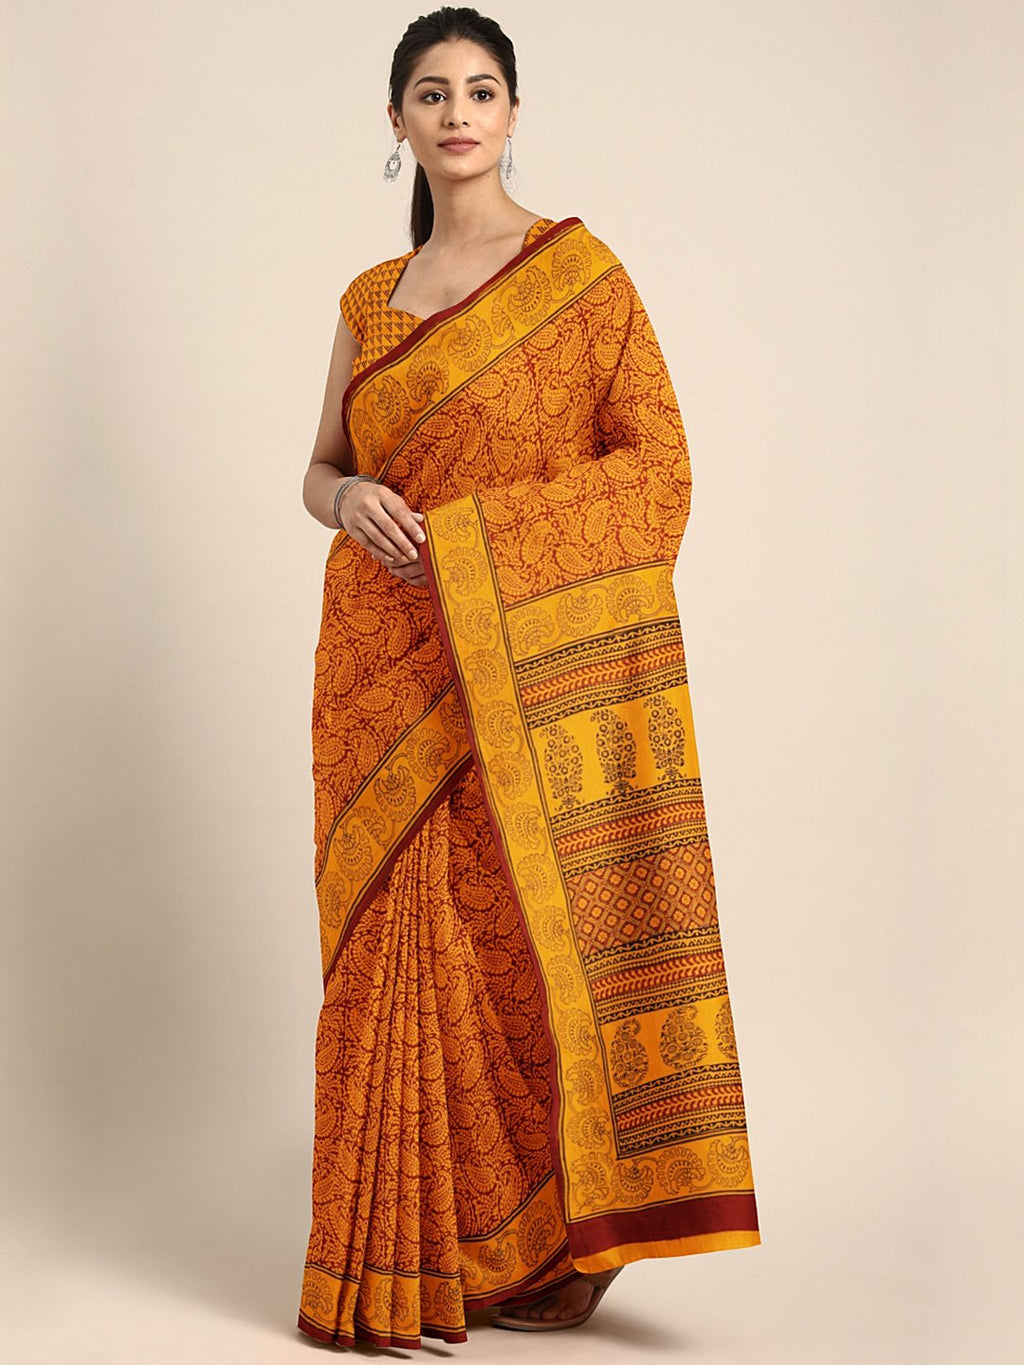 Mustard Yellow Maroon Handblock Print Saree-Saree-Kalakari India-MYBASA0012-Bagh, Cotton, Geographical Indication, Hand Blocks, Hand Crafted, Heritage Prints, Natural Dyes, Sarees, Sustainable Fabrics-[Linen,Ethnic,wear,Fashionista,Handloom,Handicraft,Indigo,blockprint,block,print,Cotton,Chanderi,Blue, latest,classy,party,bollywood,trendy,summer,style,traditional,formal,elegant,unique,style,hand,block,print, dabu,booti,gift,present,glamorous,affordable,collectible,Sari,Saree,printed, holi, Diwal